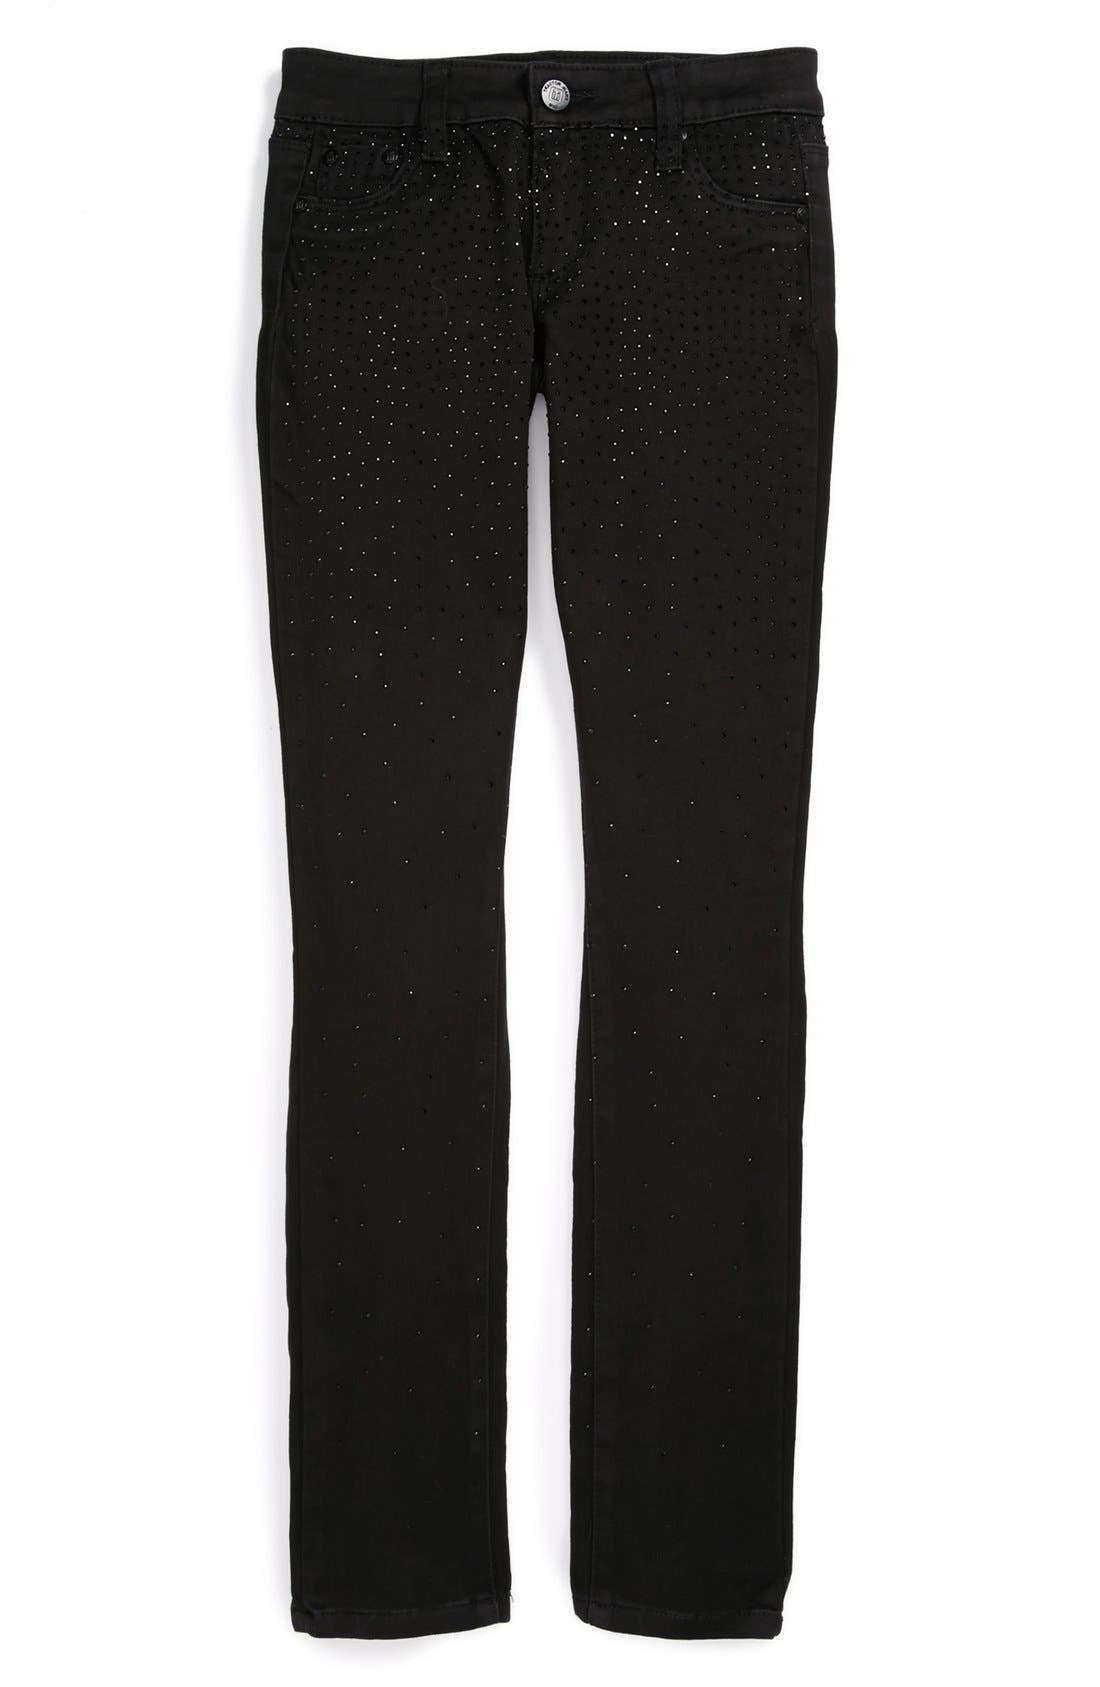 Main Image - Tractr Sparkle Skinny Jeans (Big Girls)